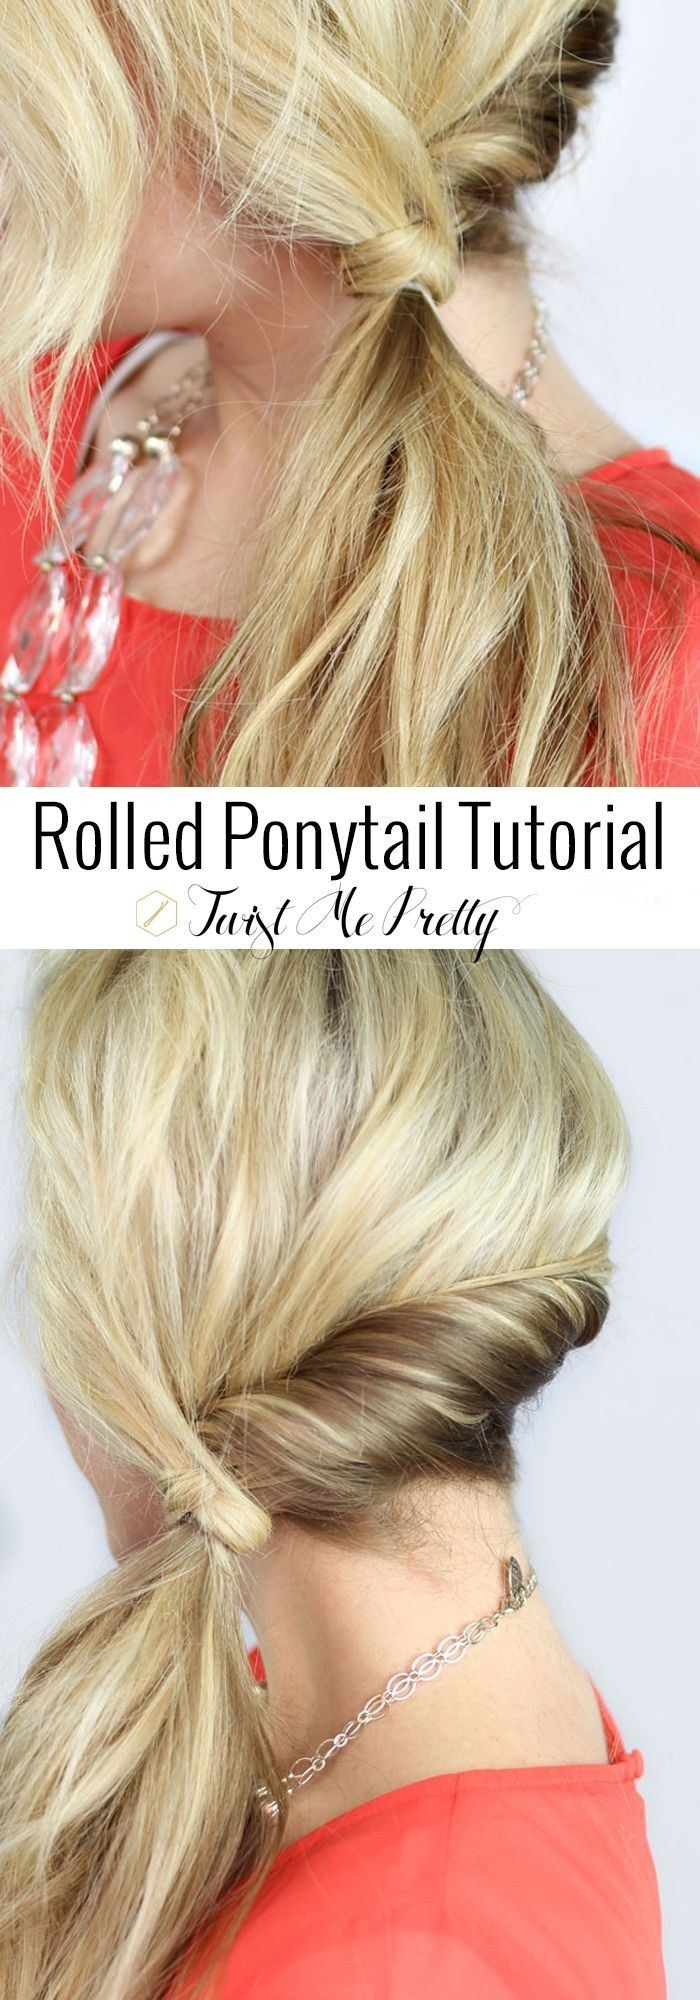 pretty hairstyles for summer everyday hairstyles ponytail